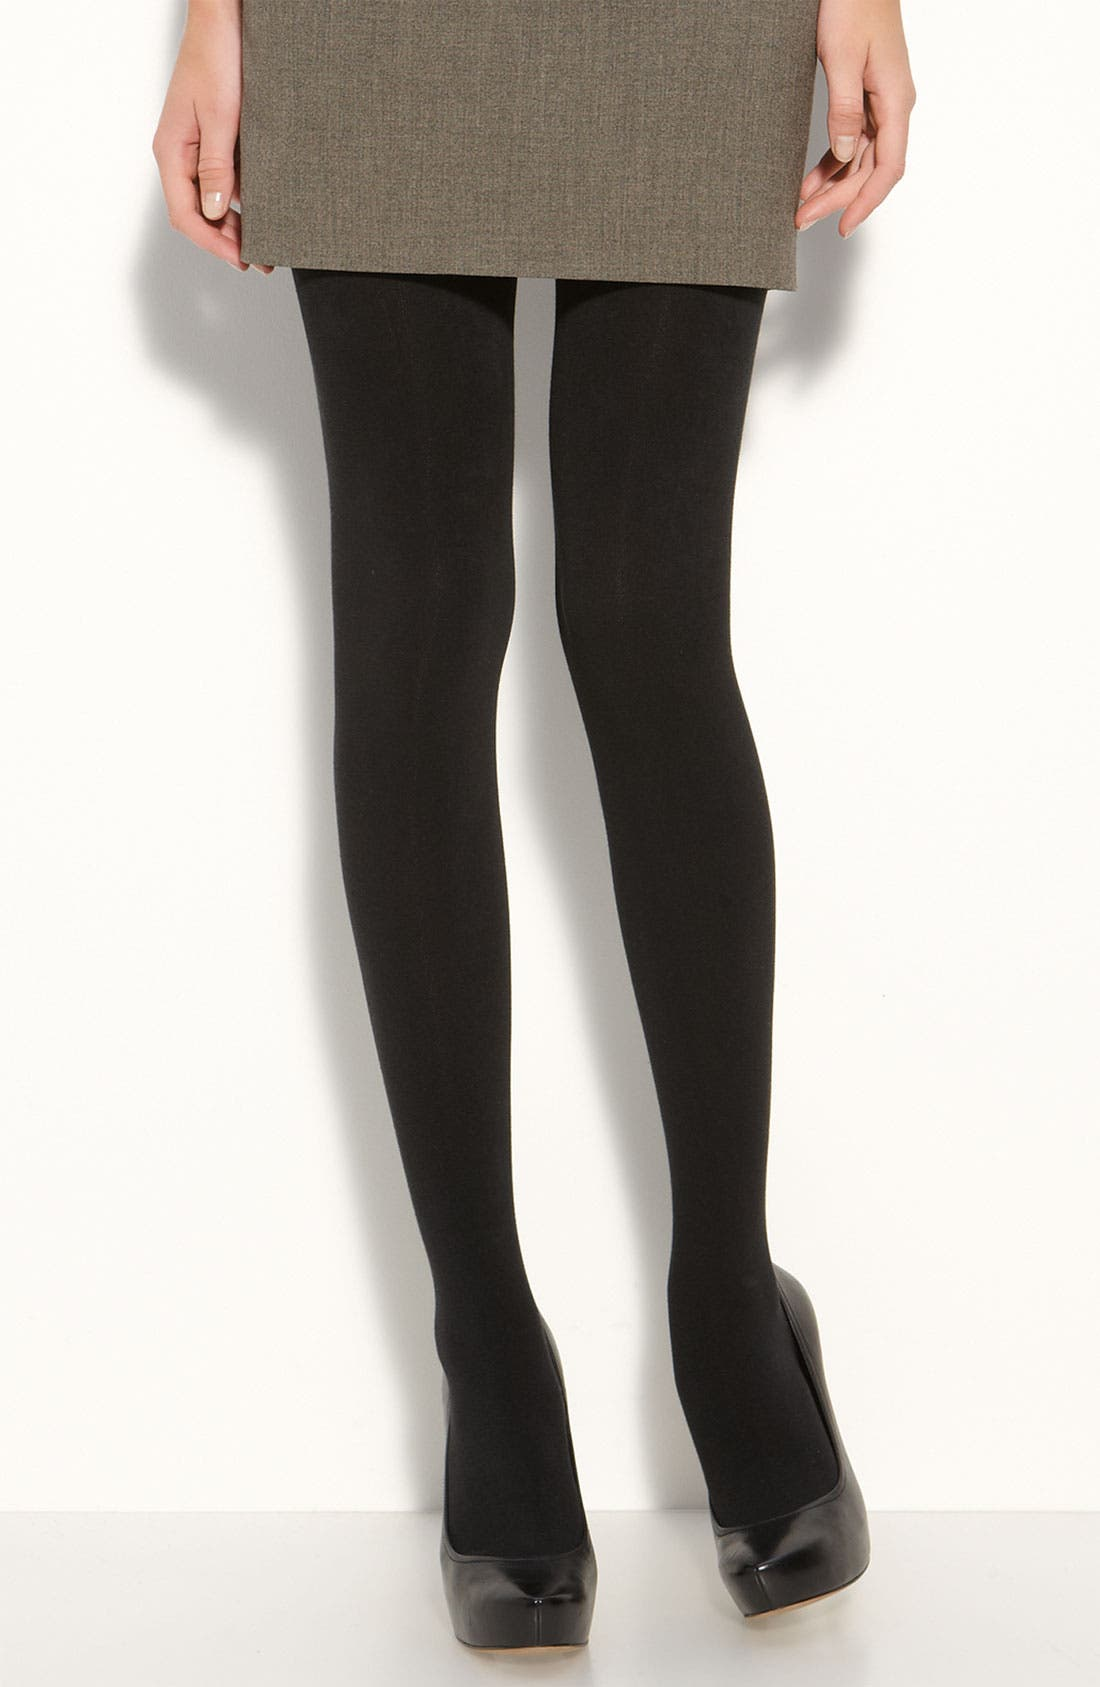 Alternate Image 1 Selected - Donna Karan 'Luxe Layer' Tights